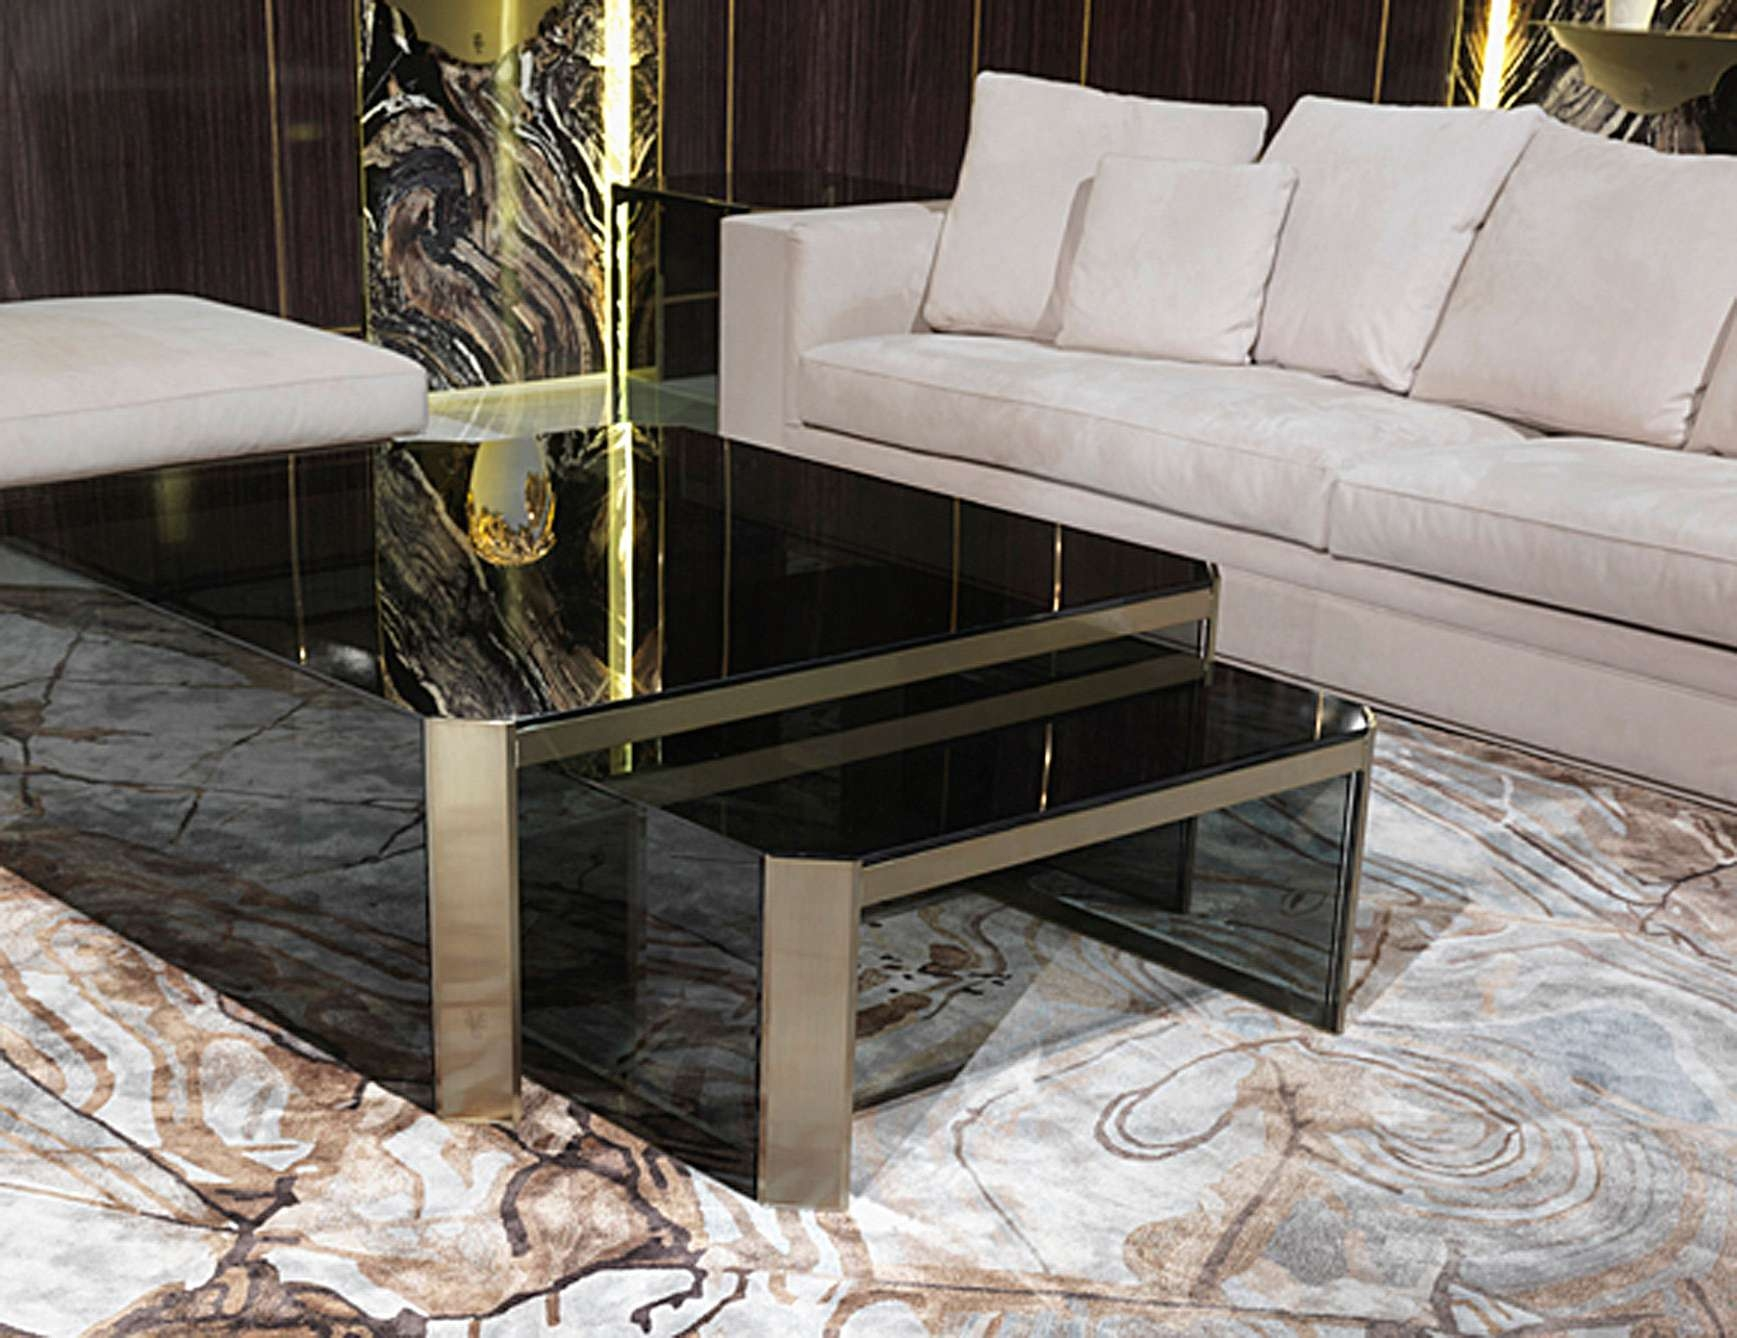 Current Luxury Coffee Tables Within Nella Vetrina Visionnaire Ipe Cavalli Barrett Smoked Glass Luxury (View 3 of 20)